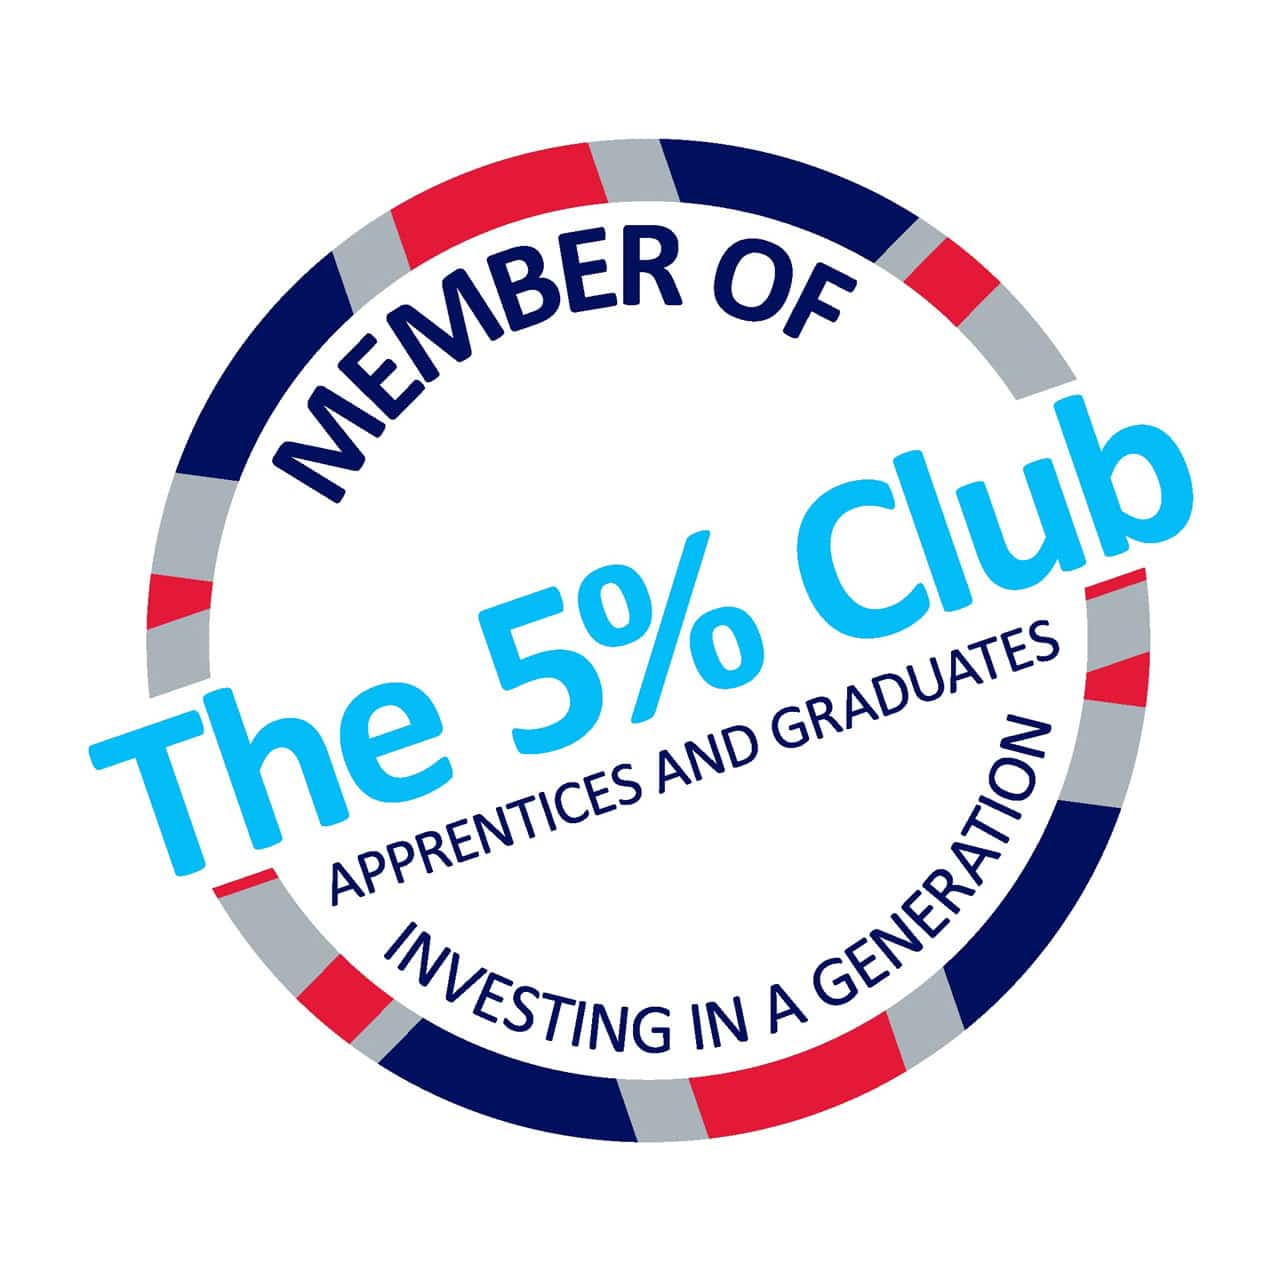 Multitech Site Services - Members of the 5 Percent Club Committed to Employing Apprentices and Graduates